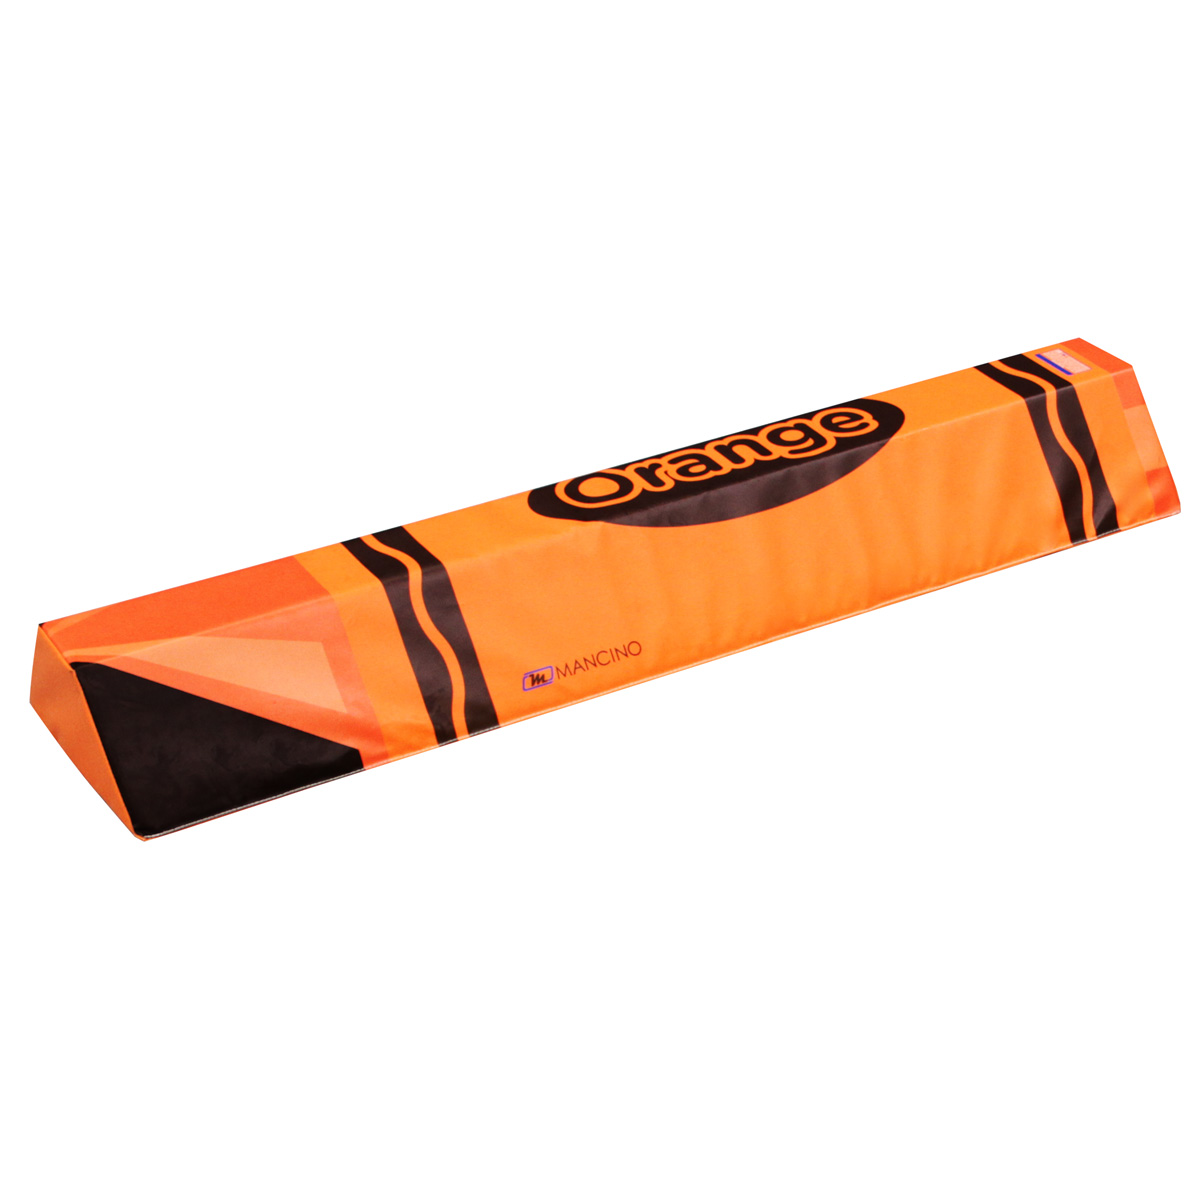 orange crayola crayon low balance beam - mancino mats